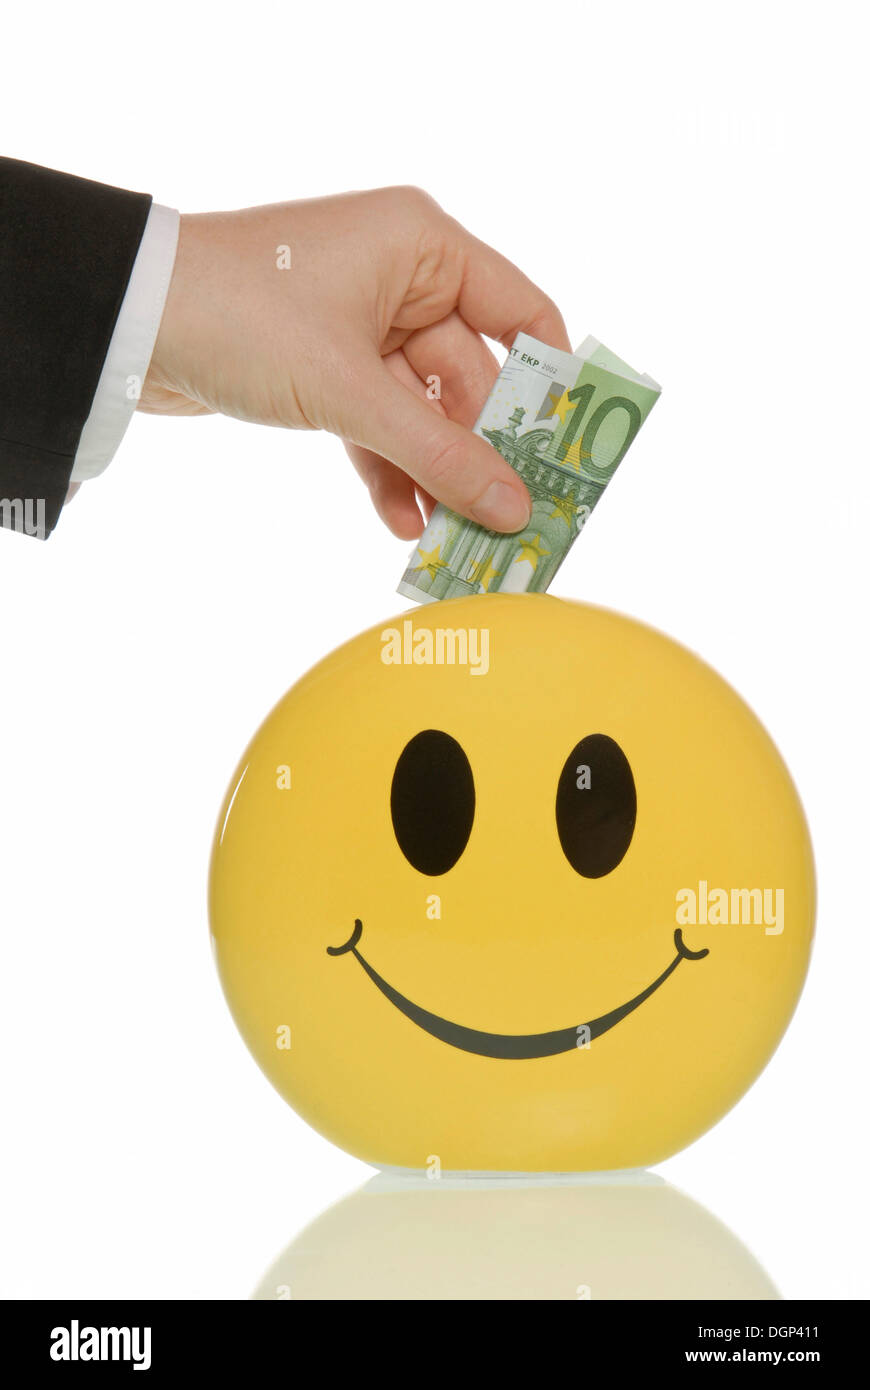 Business man putting a 100-euro note in a smiley piggy bank - Stock Image